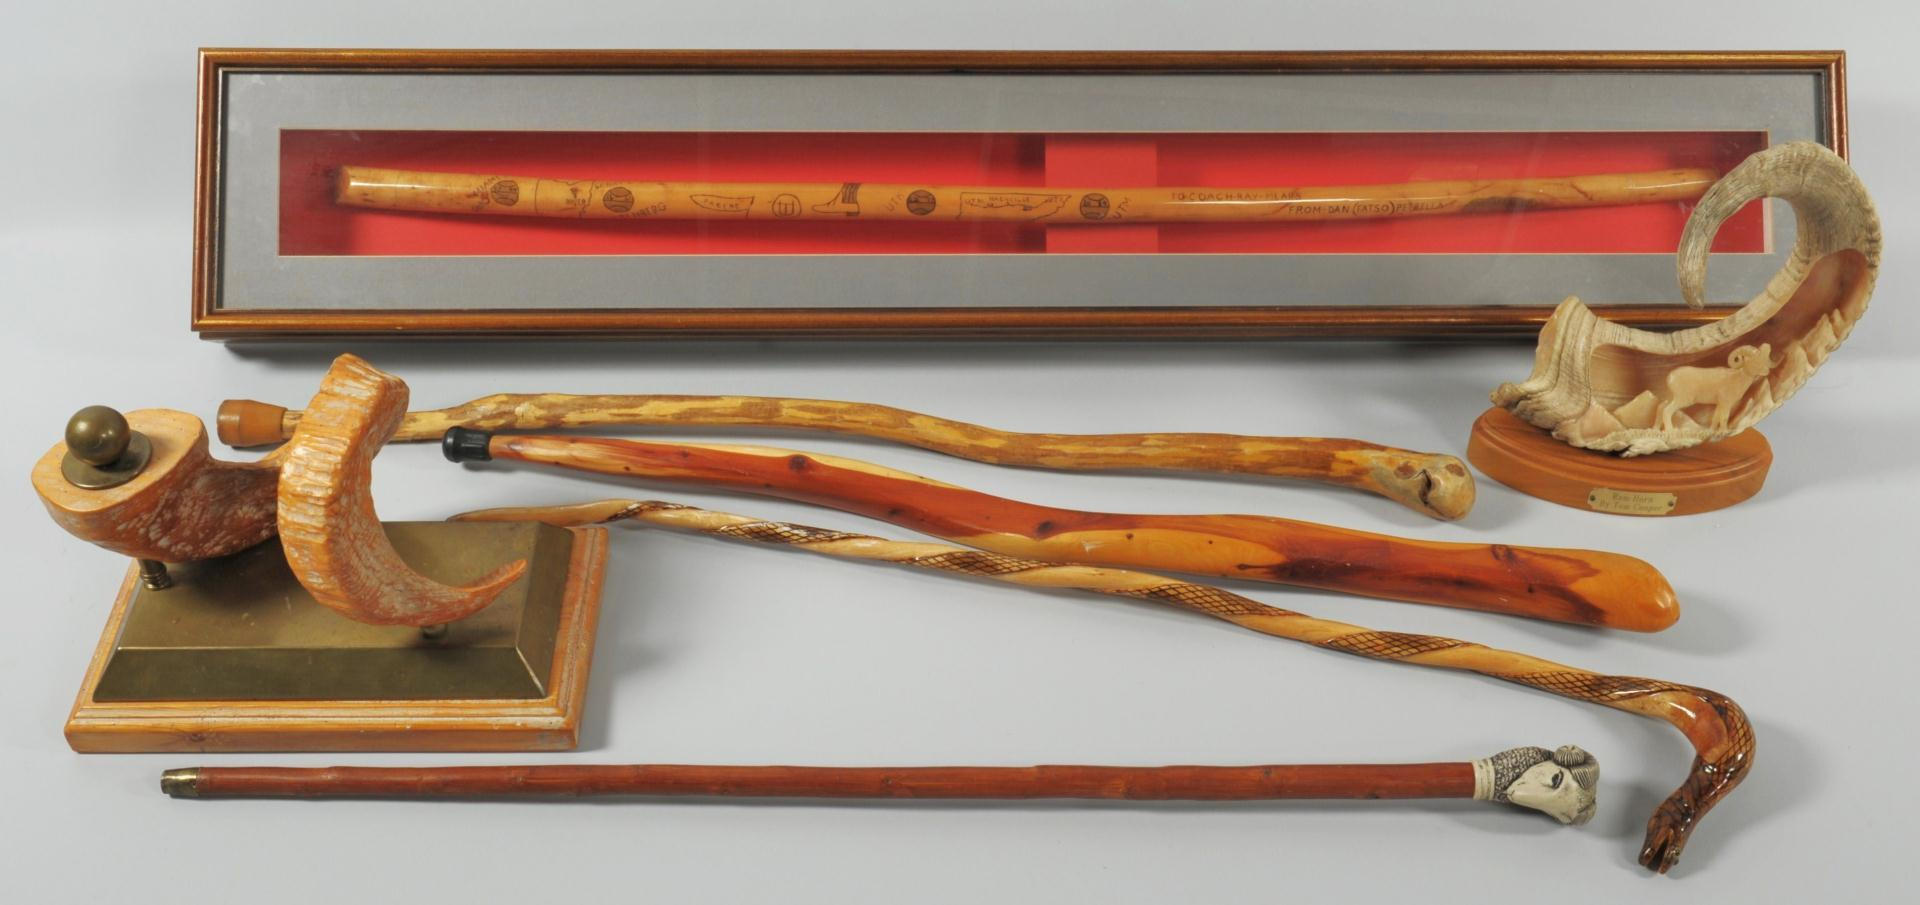 Lot 605: Grouping of Ray Mears decorative items. 2 ram horn